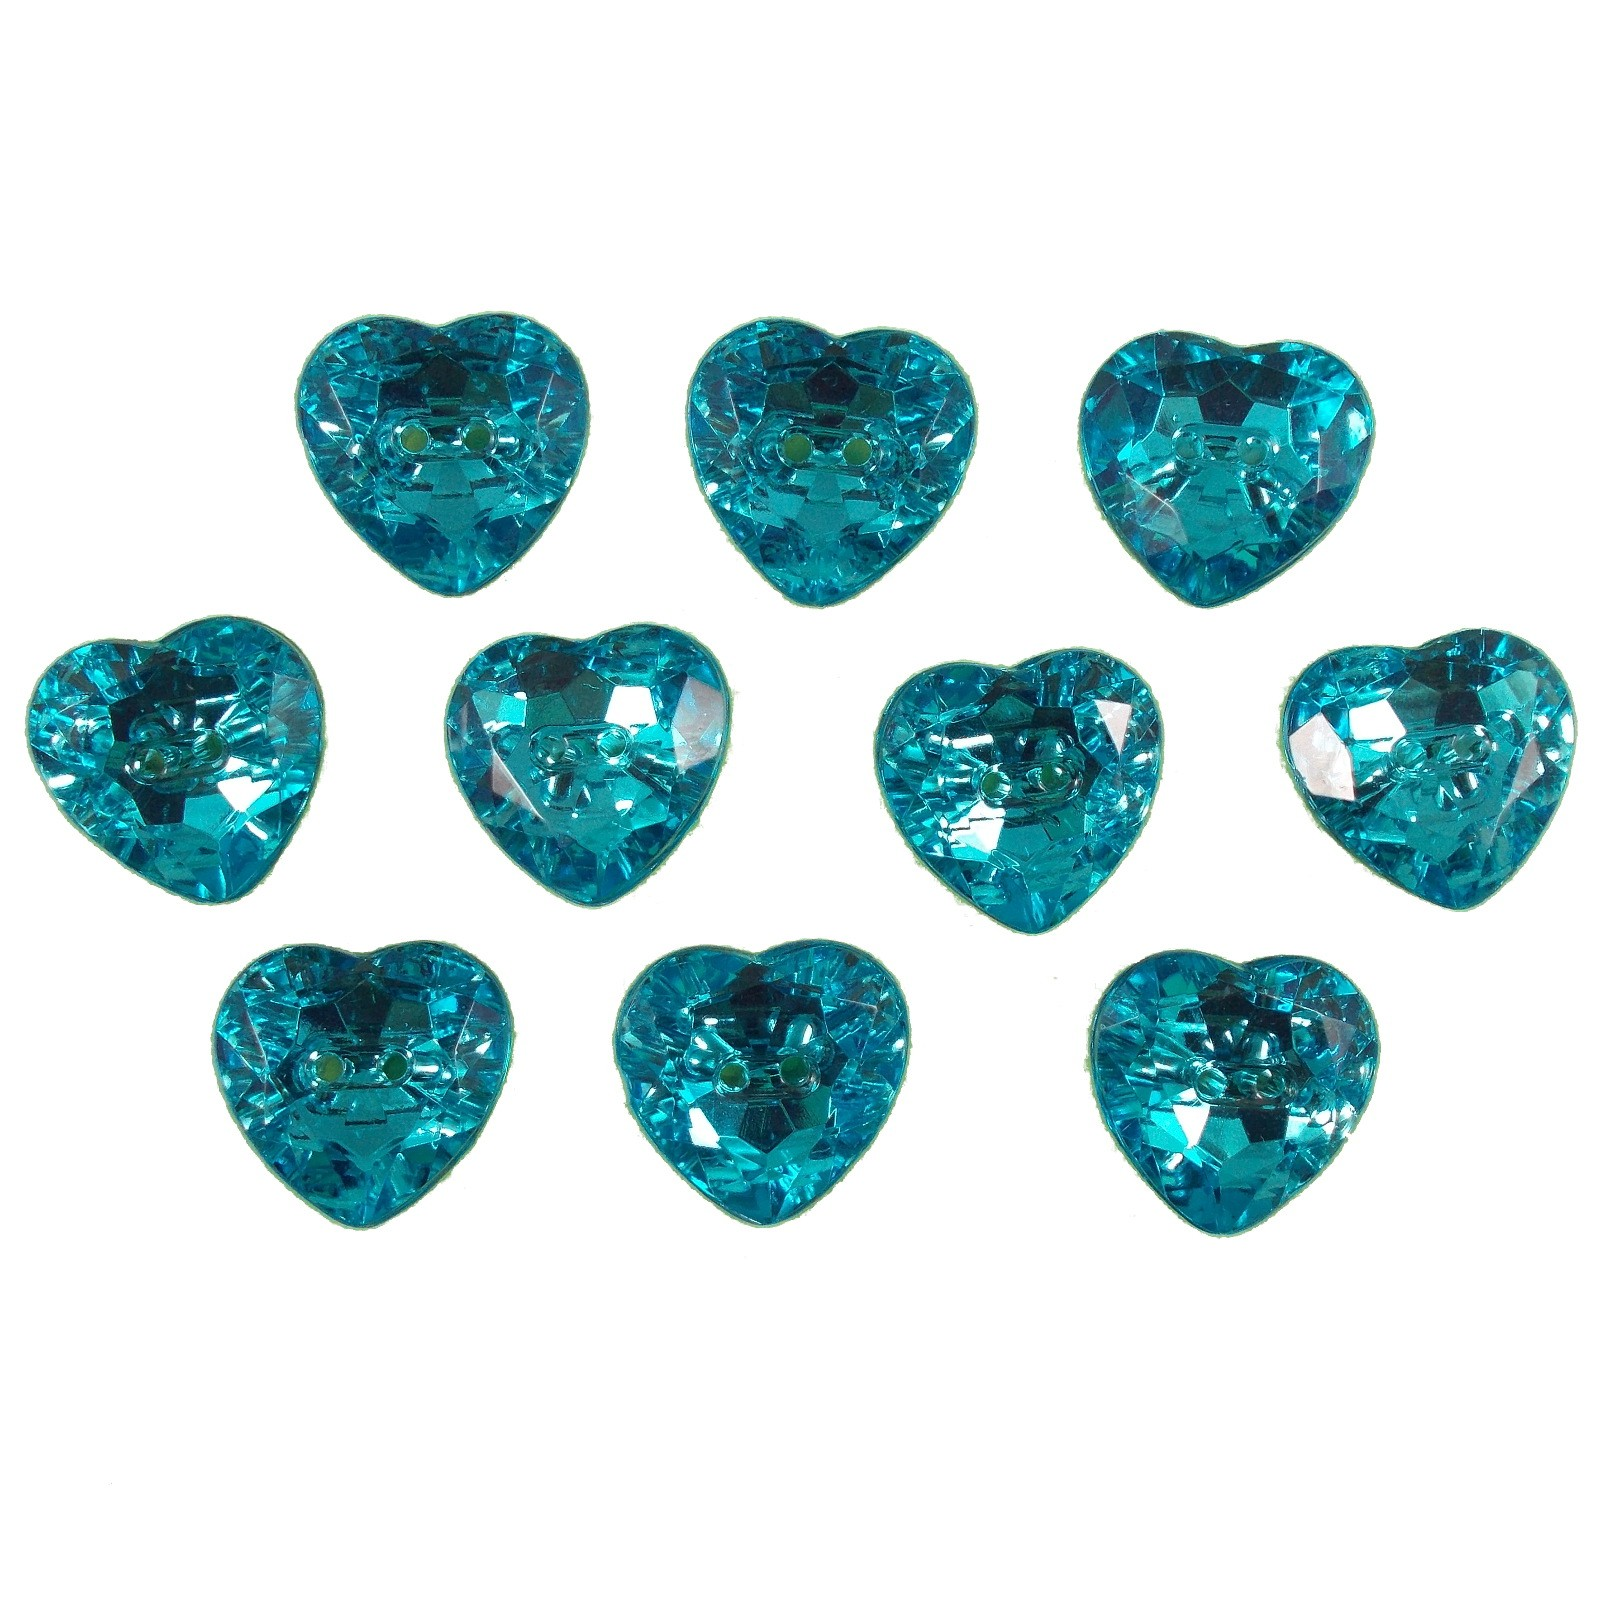 Acrylic Crystal Effect Heart Shape Buttons 20mm Turquoise Pack of 10